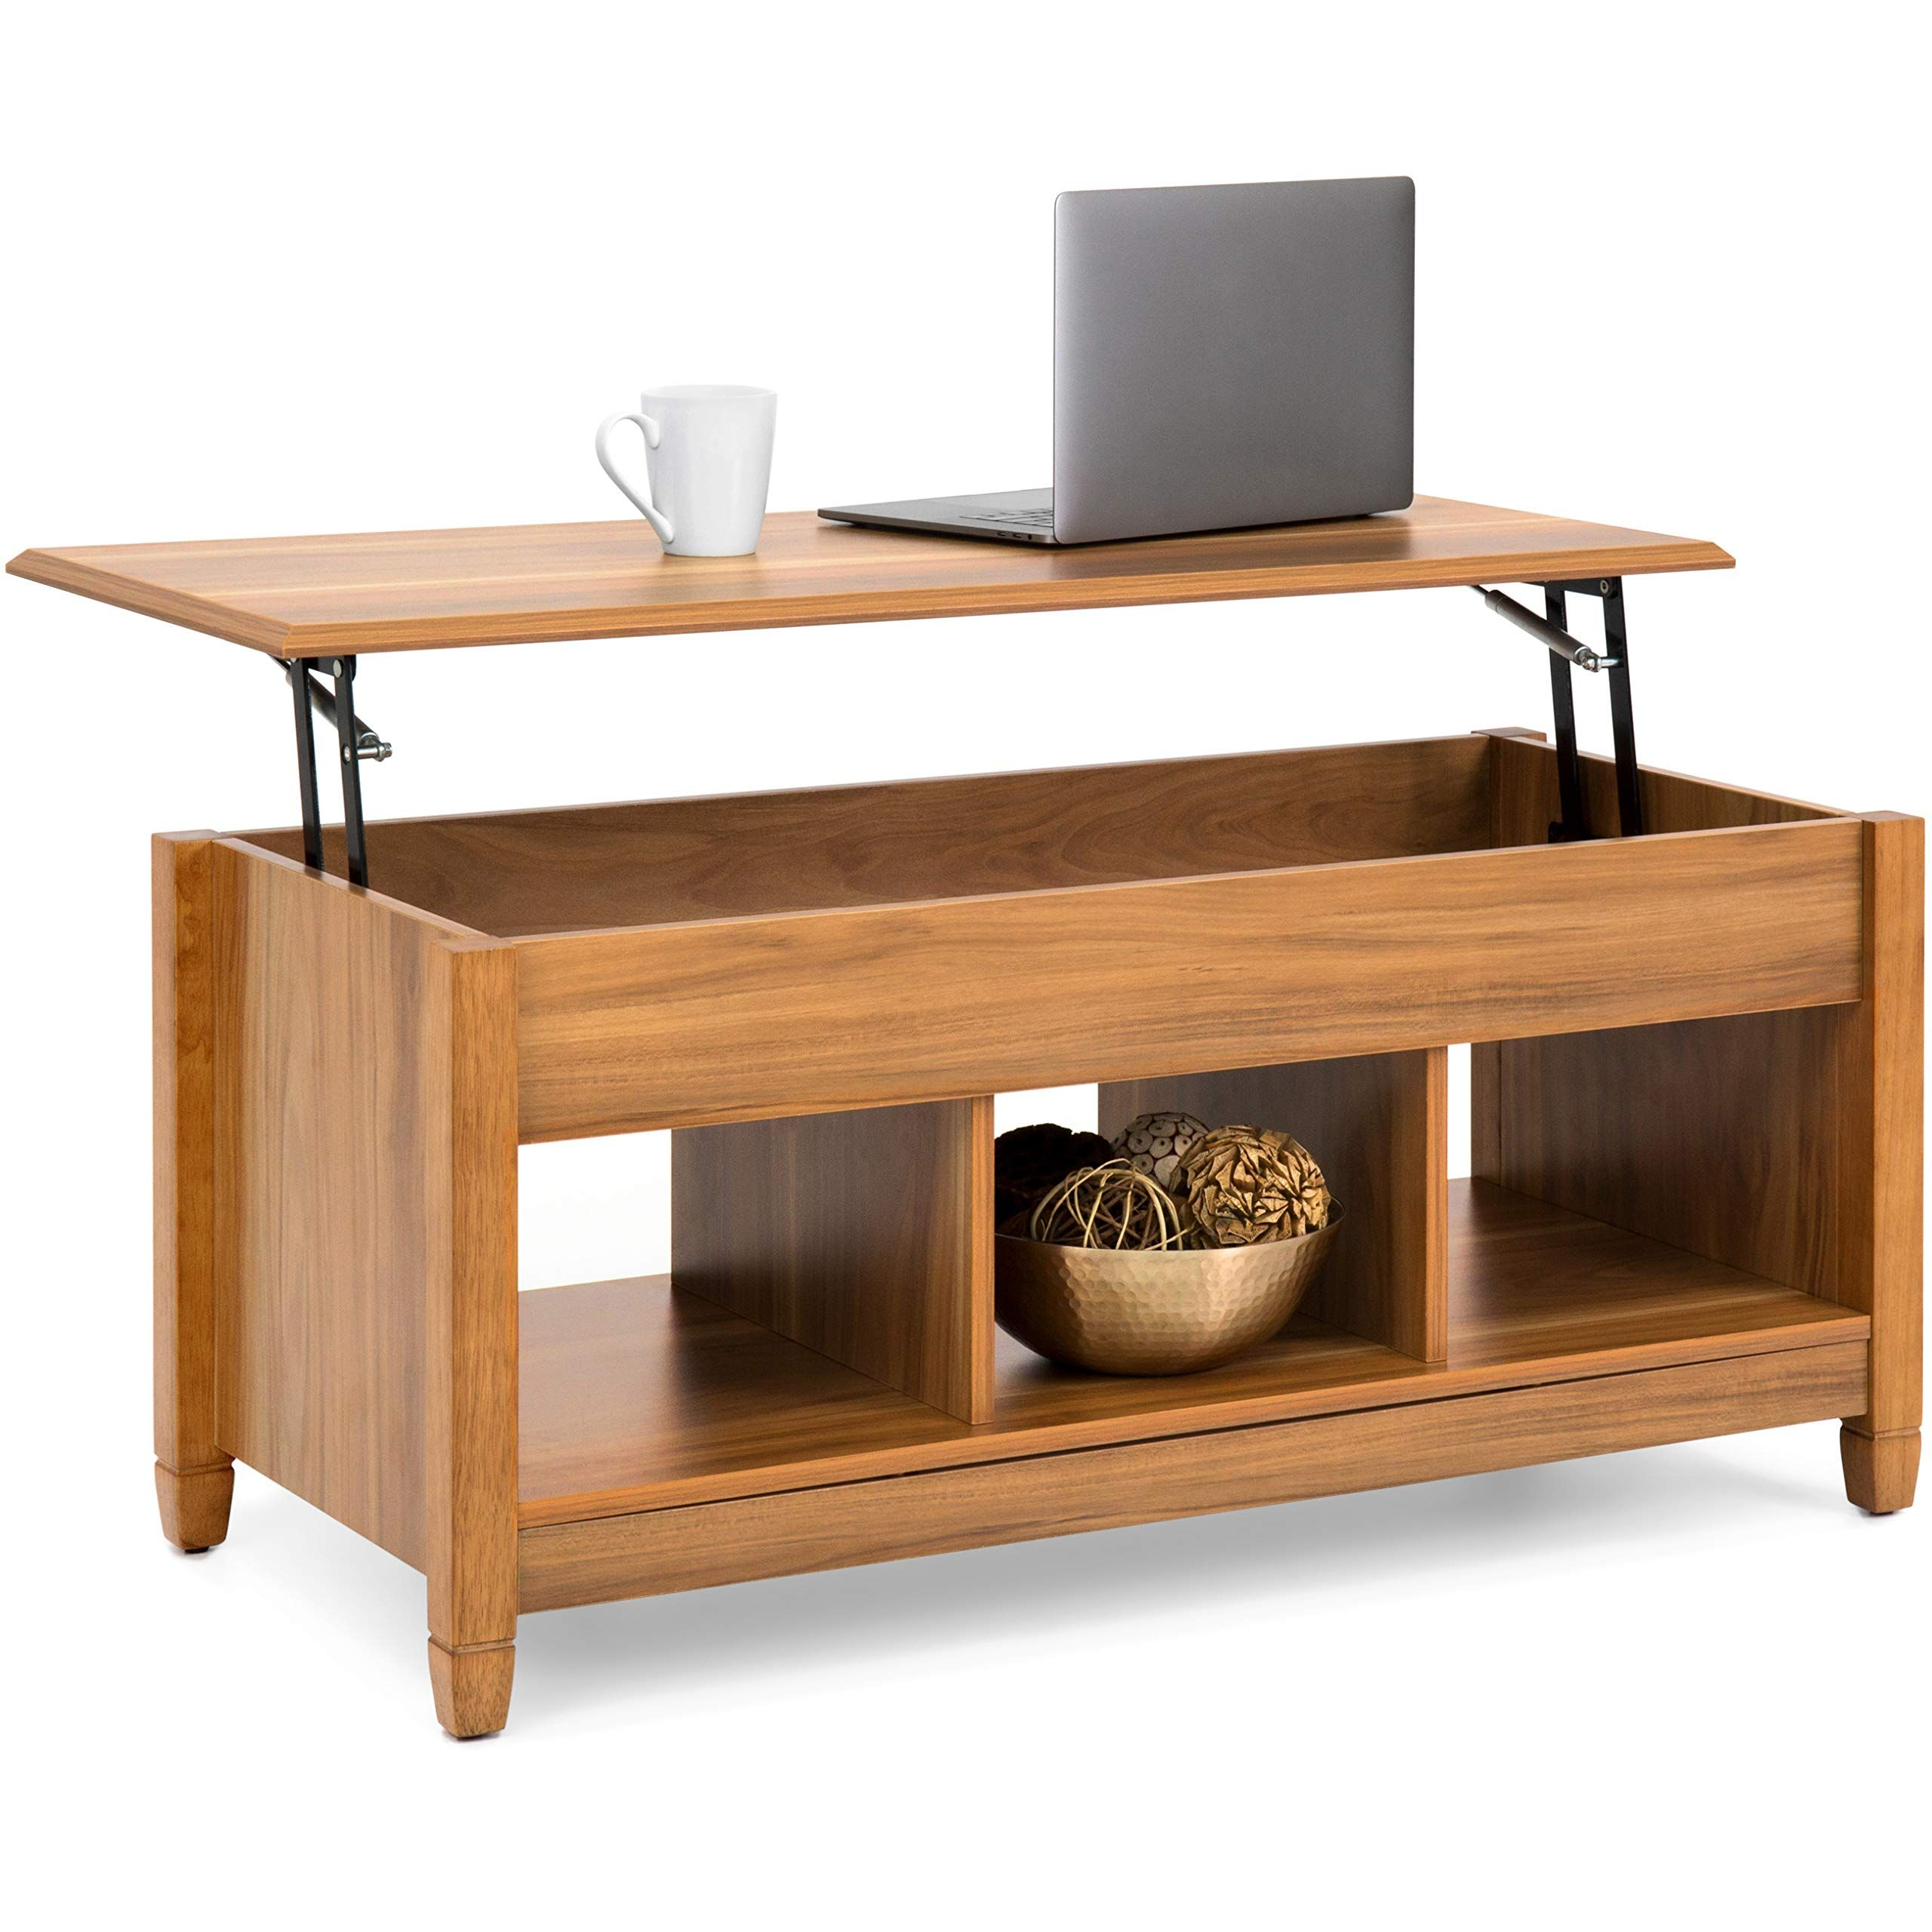 Best Choice Products Modern Home Coffee Table Furniture W Hidden Storage And Lift Tabletop Br Coffee Table Furniture Home Coffee Tables Dining Room Table Set [ jpg ]